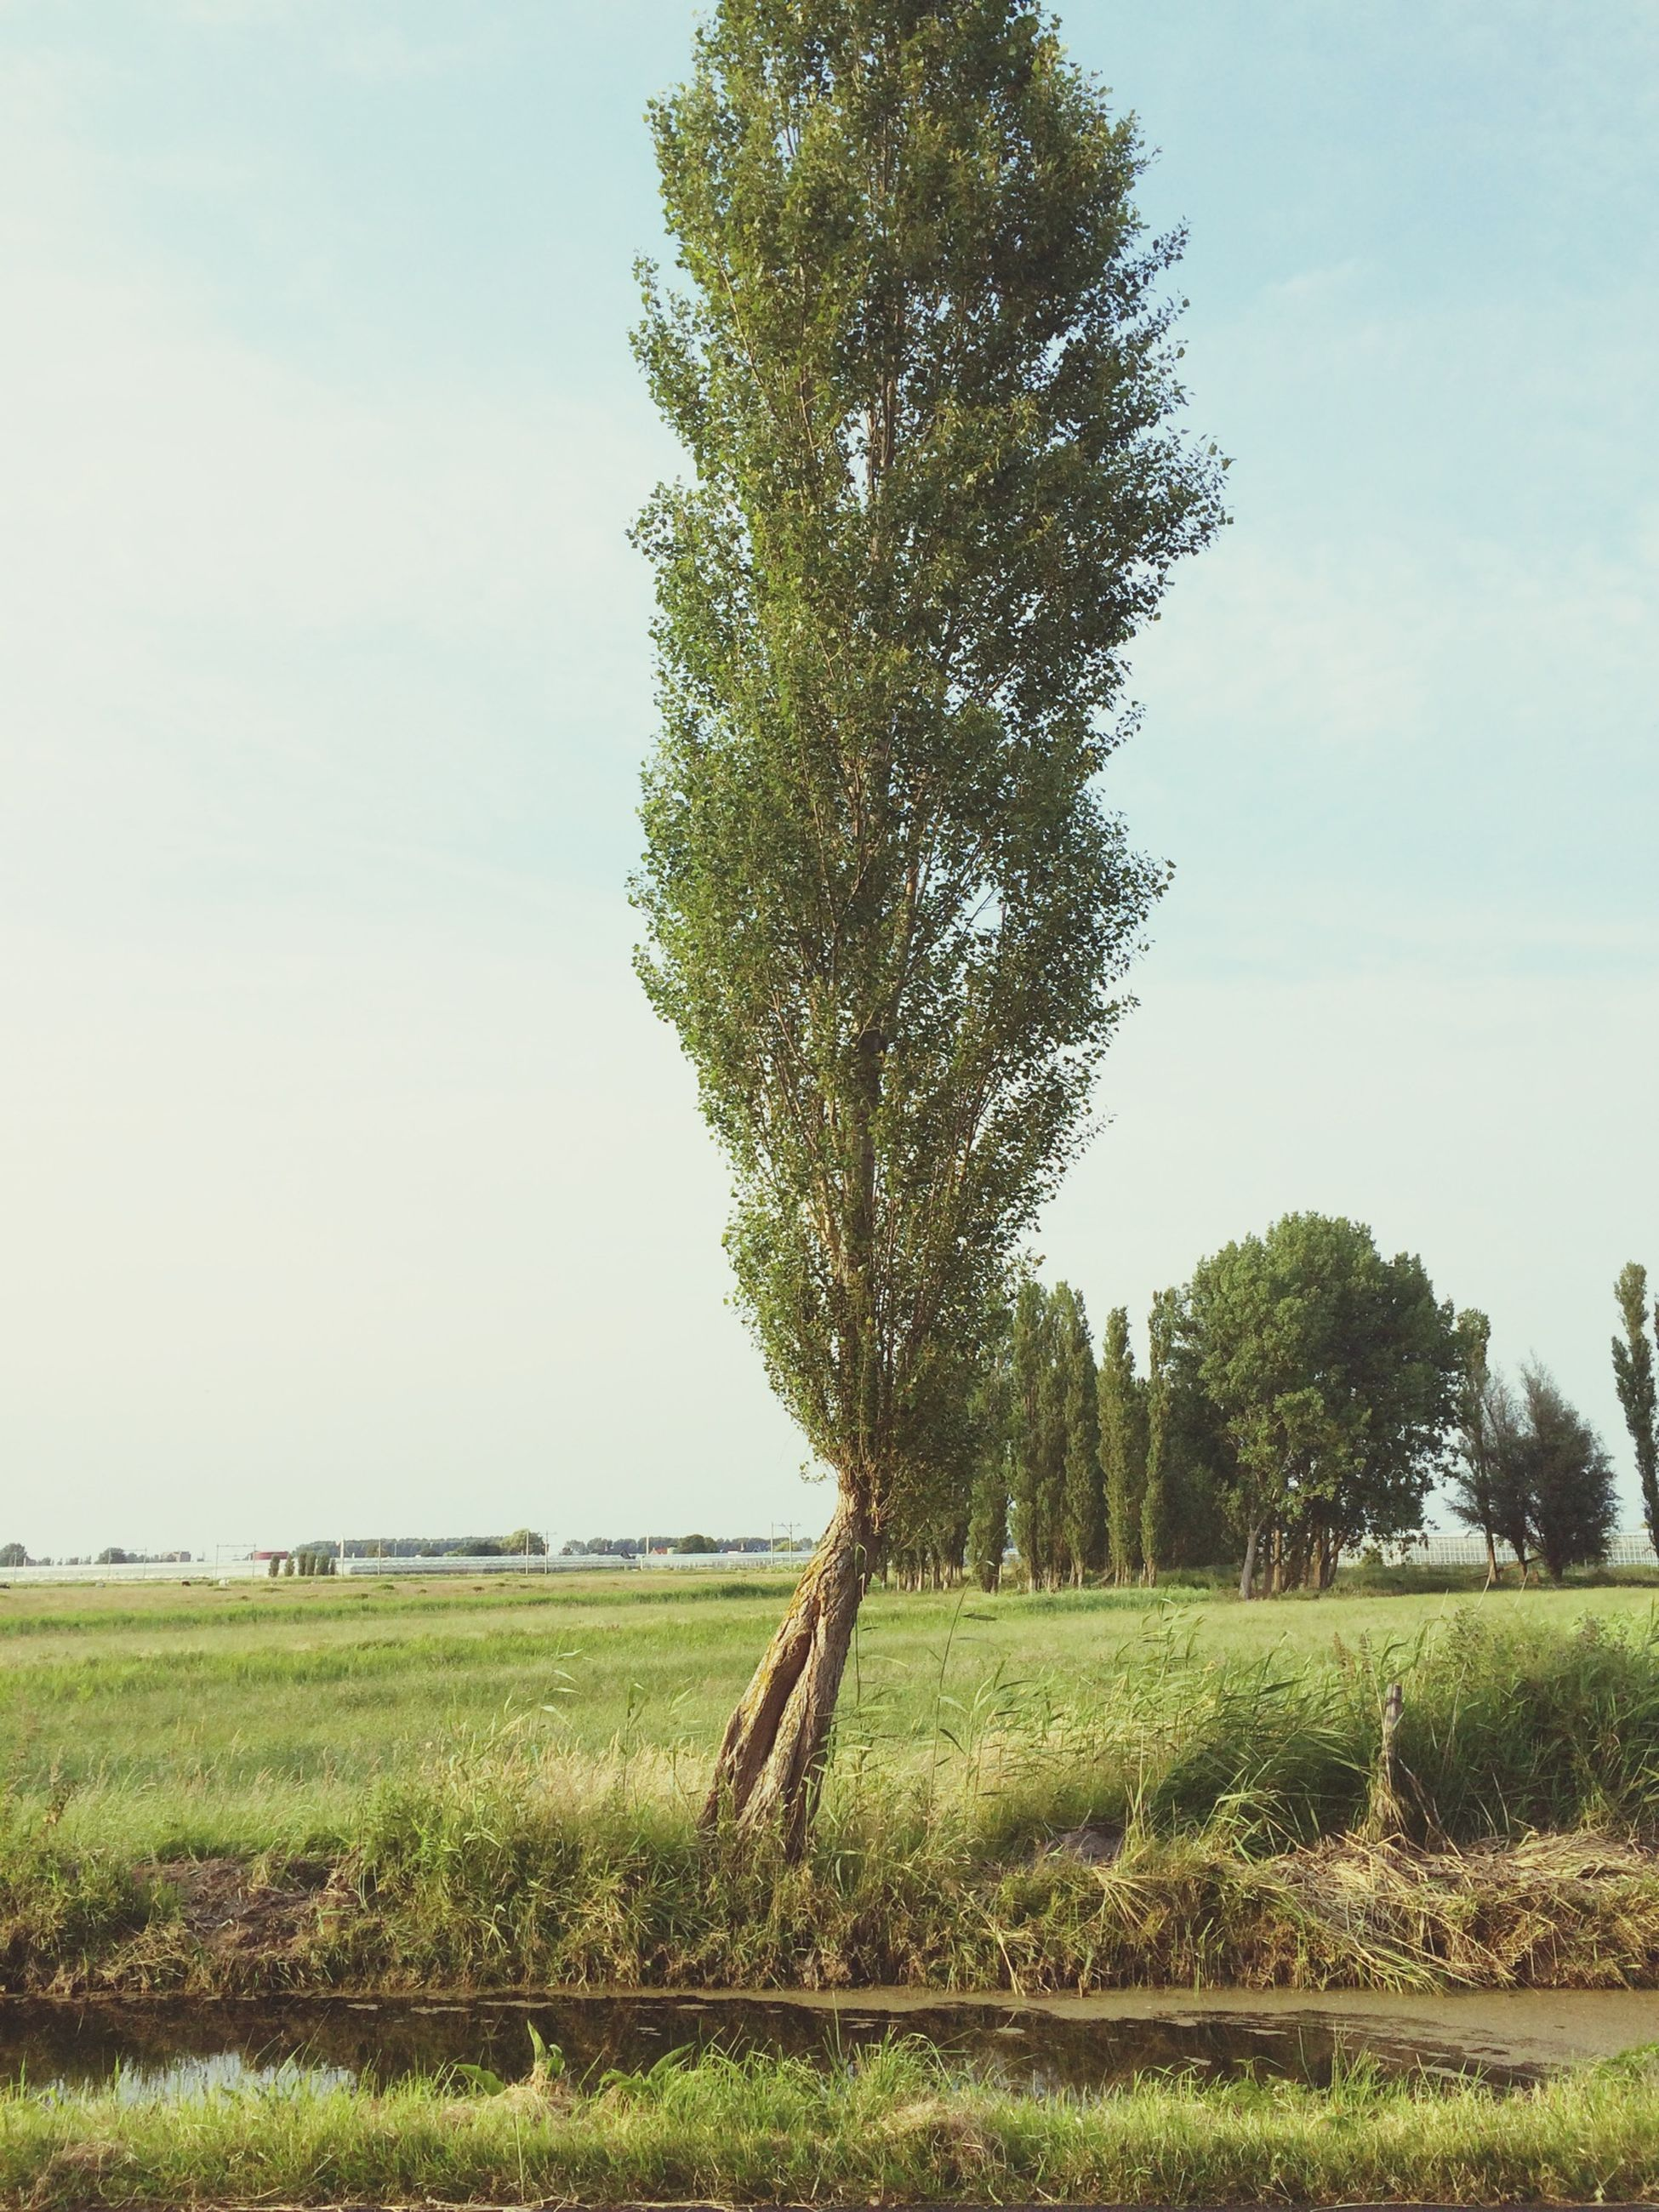 grass, tree, field, tranquility, tranquil scene, landscape, green color, growth, sky, scenics, nature, beauty in nature, grassy, green, rural scene, clear sky, day, non-urban scene, agriculture, idyllic